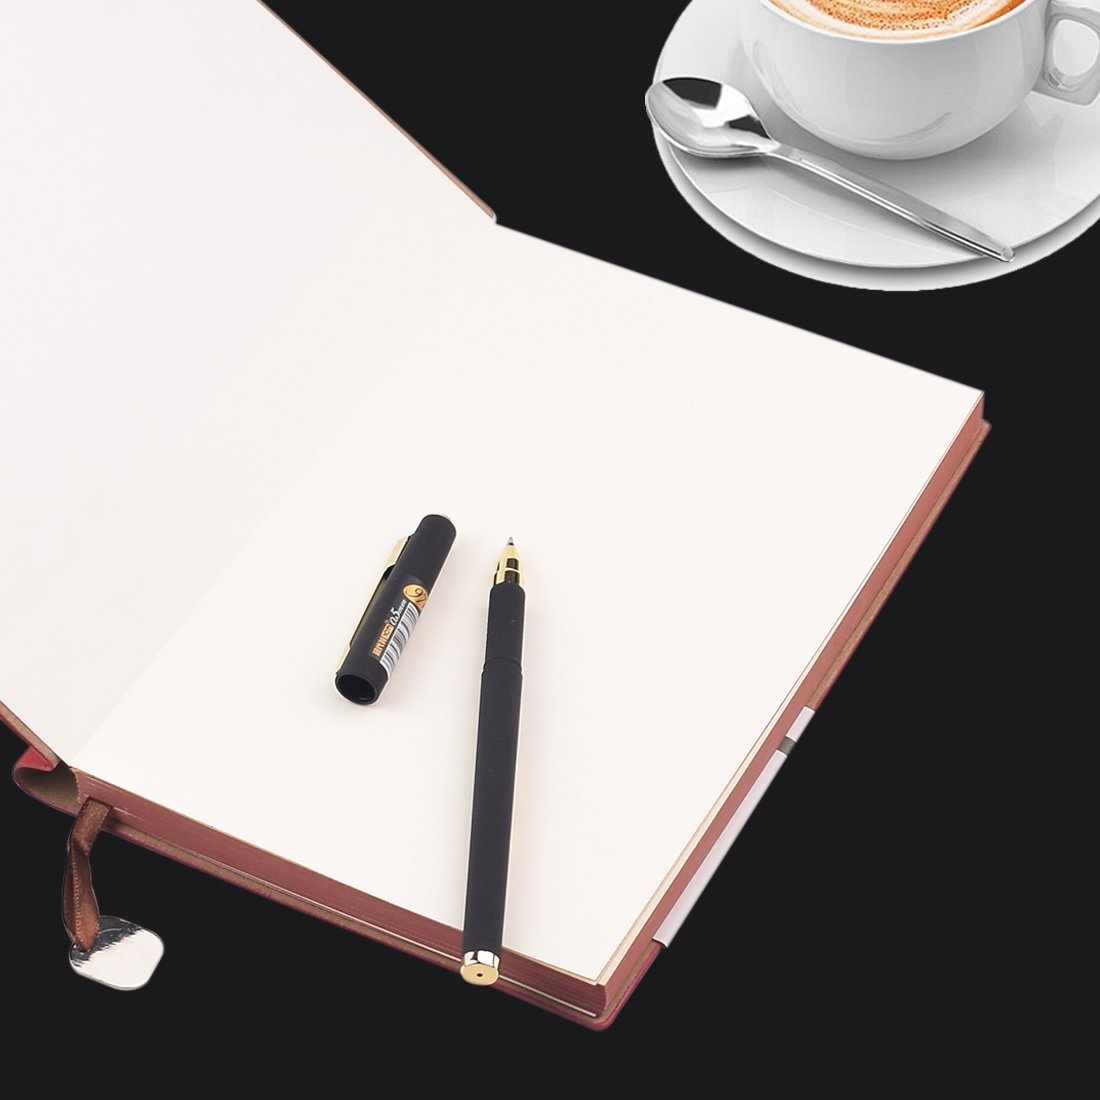 eBerry® Leather Notebook/Record Book/Lined Memo,Life&Success Planner,Classic Dark Coffee First Page,Pen Holder,Ribbon Bookmark,240 Lined Pages,6x8 Inches,0.5mm Gel Pen Included,Black(58-25) by izBuy (Image #1)